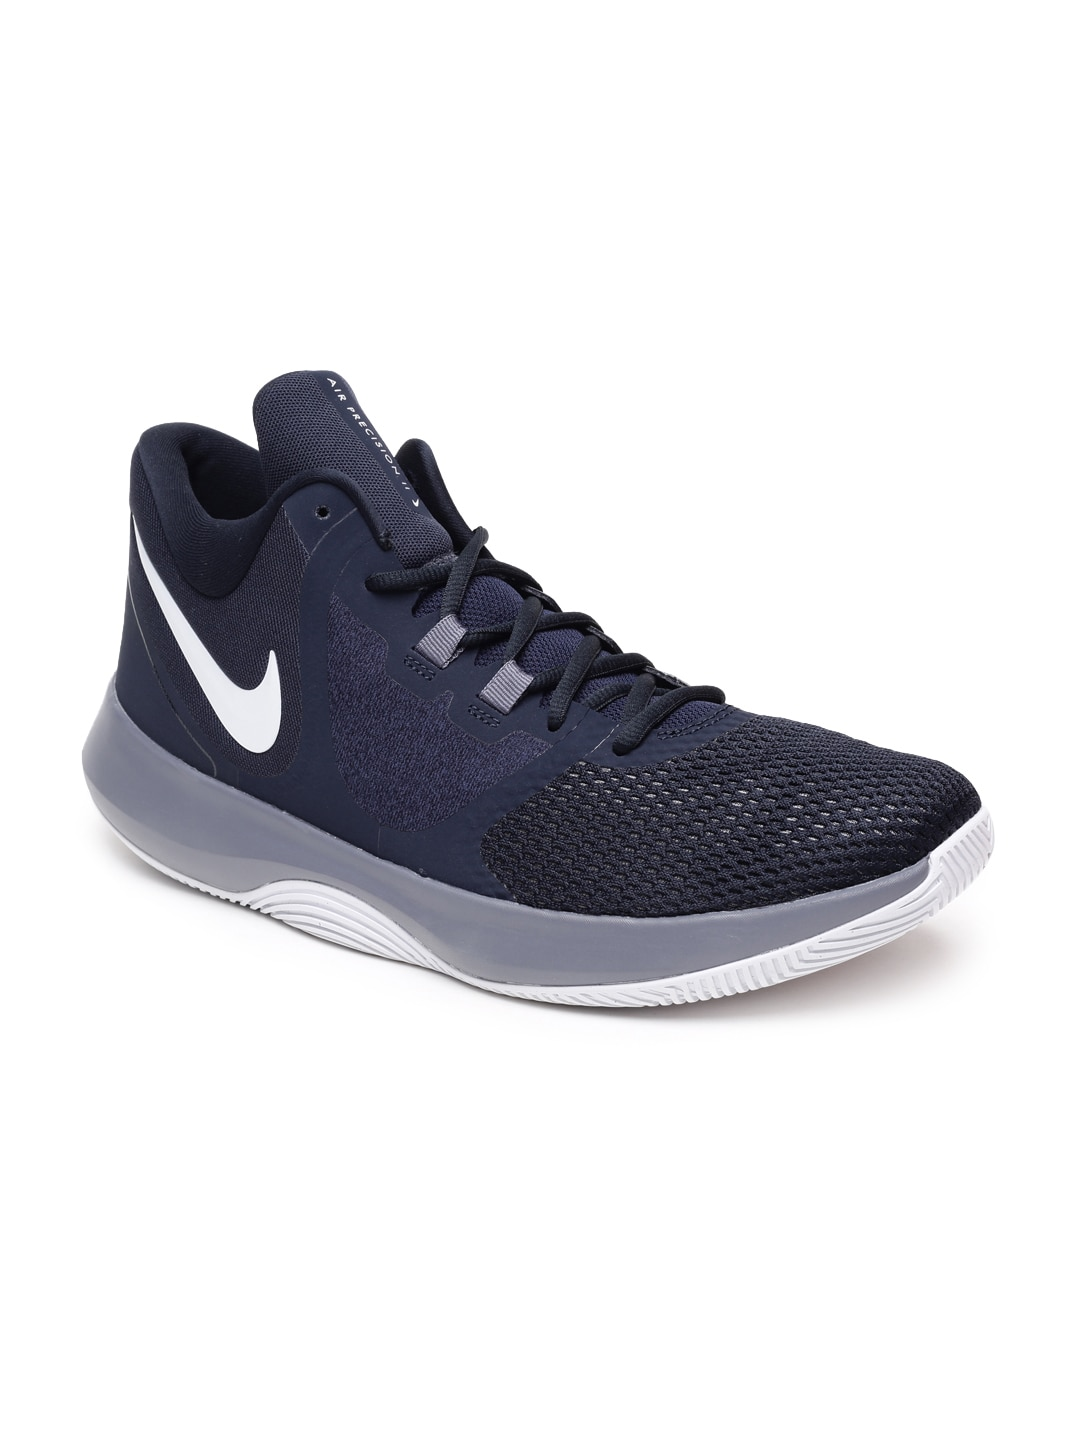 b440fea6a33f6 Nike Air Precision Ii Navy Blue Basketball Shoes for Men online in ...